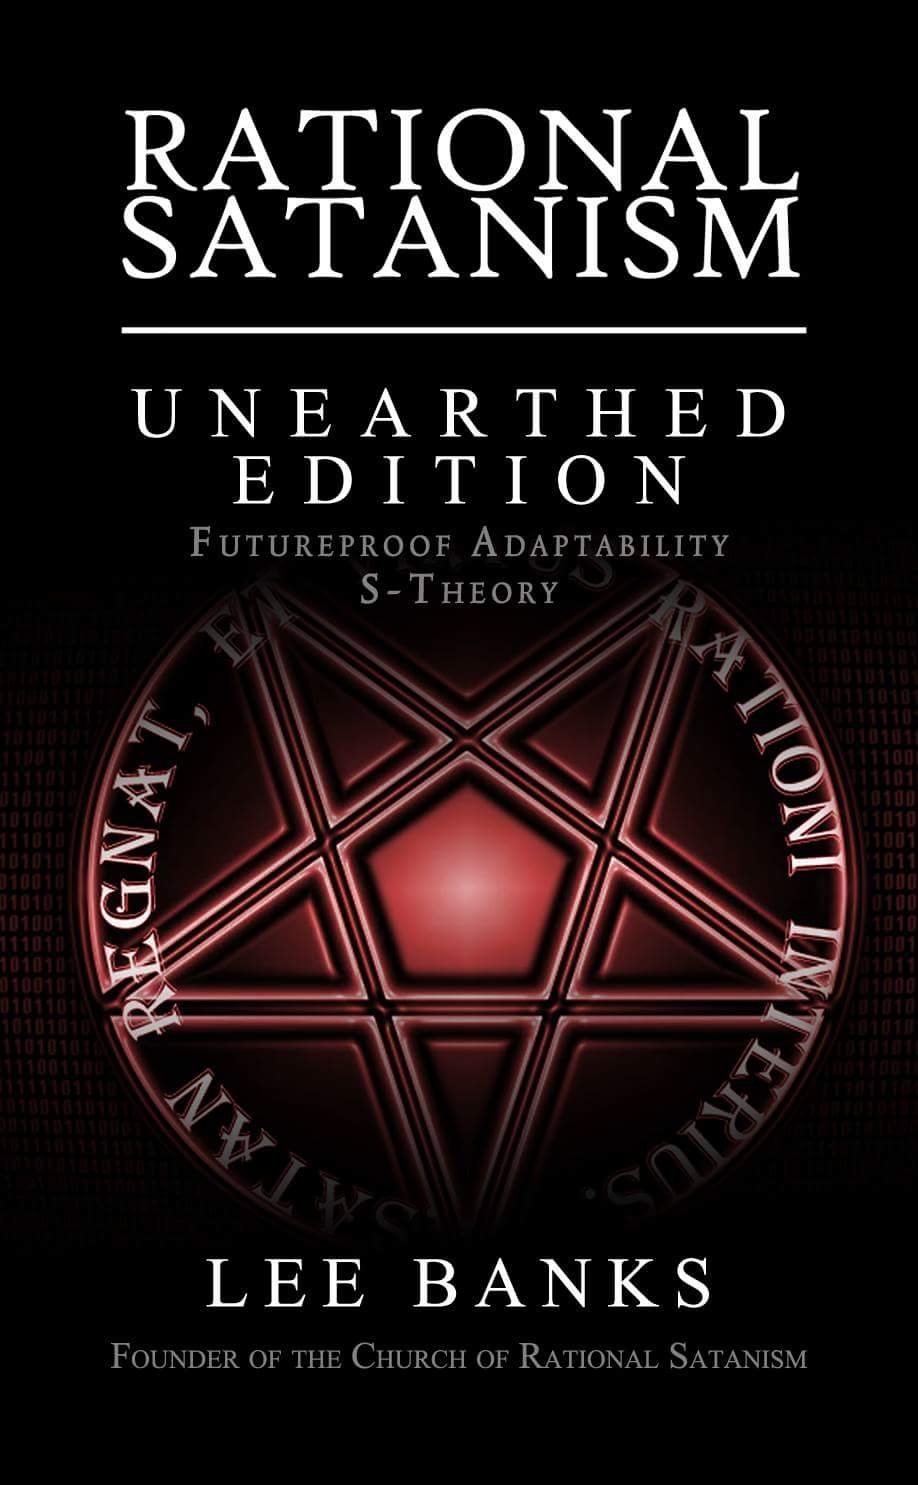 Rational Satanism Unearthed Edition